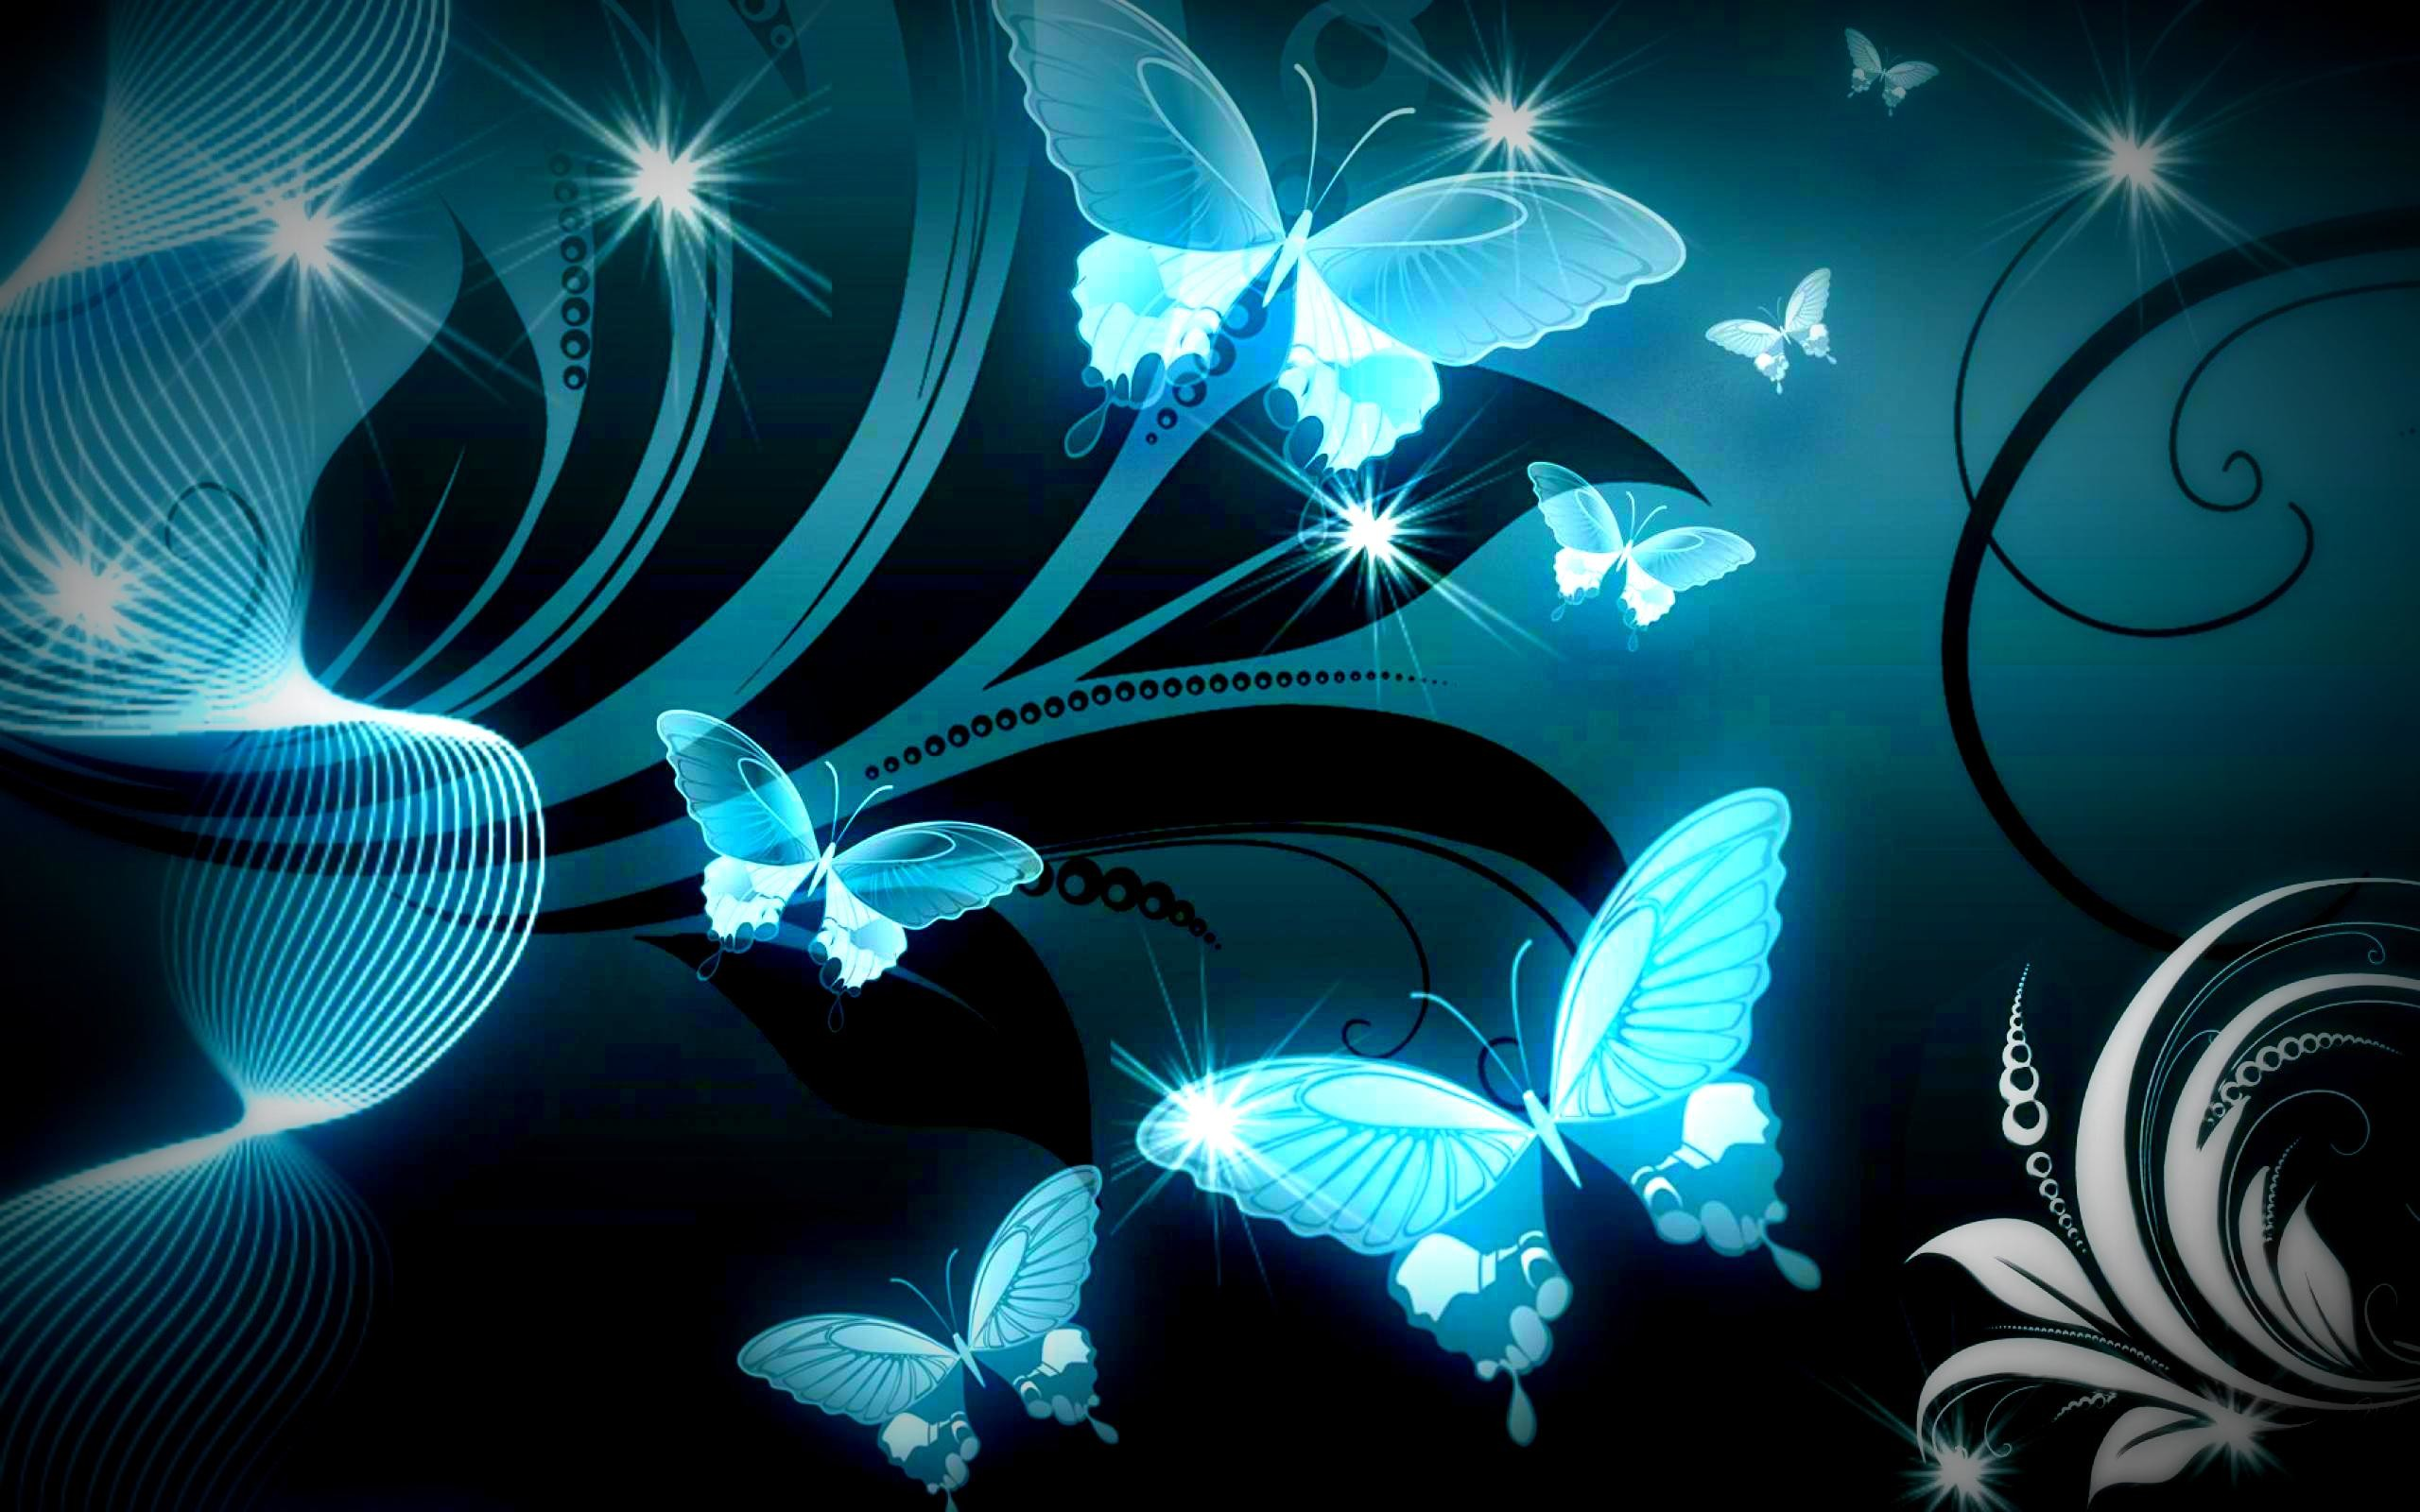 2560x1600 - Pretty Butterfly Backgrounds 21